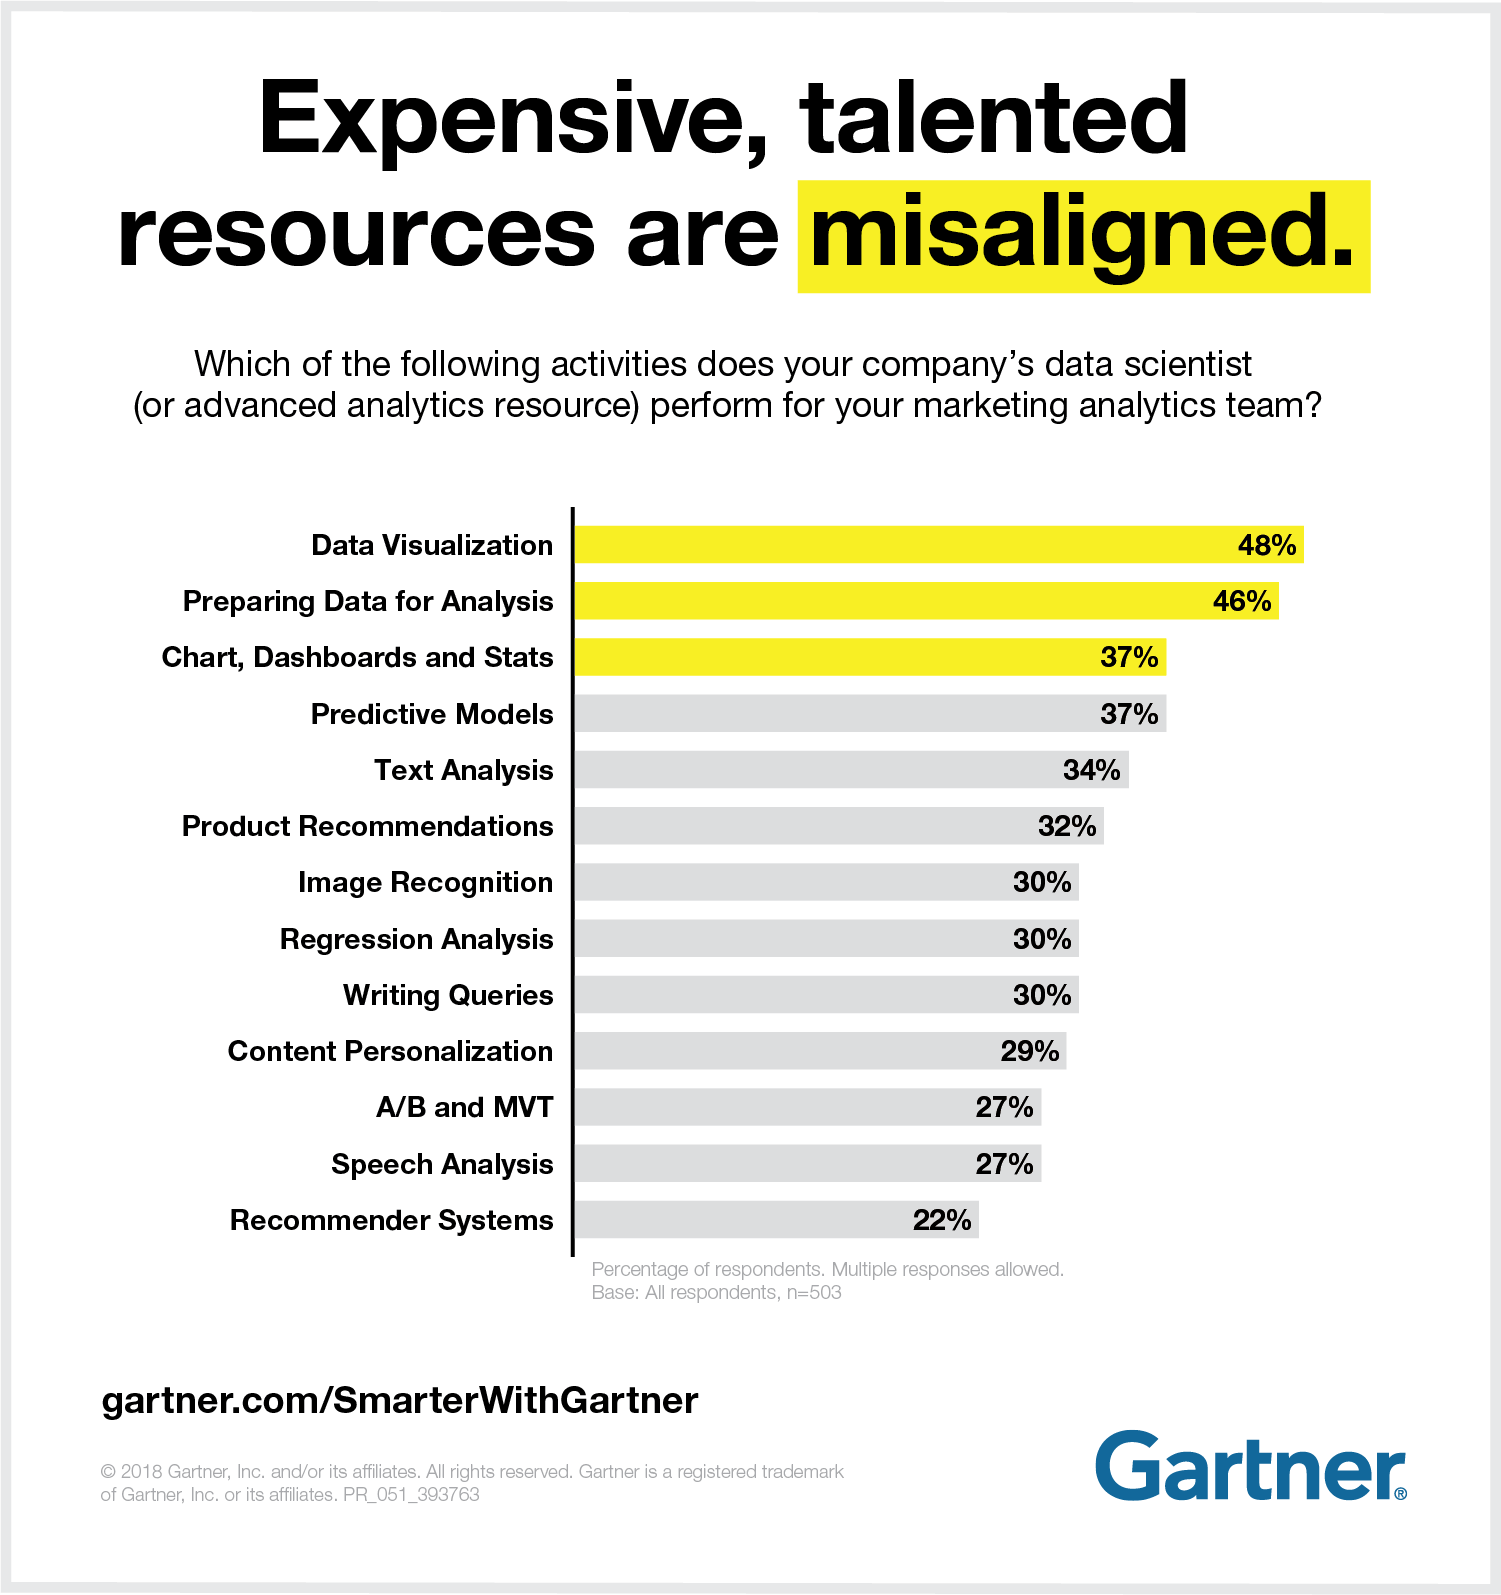 Expensive, talented resources are misaligned.